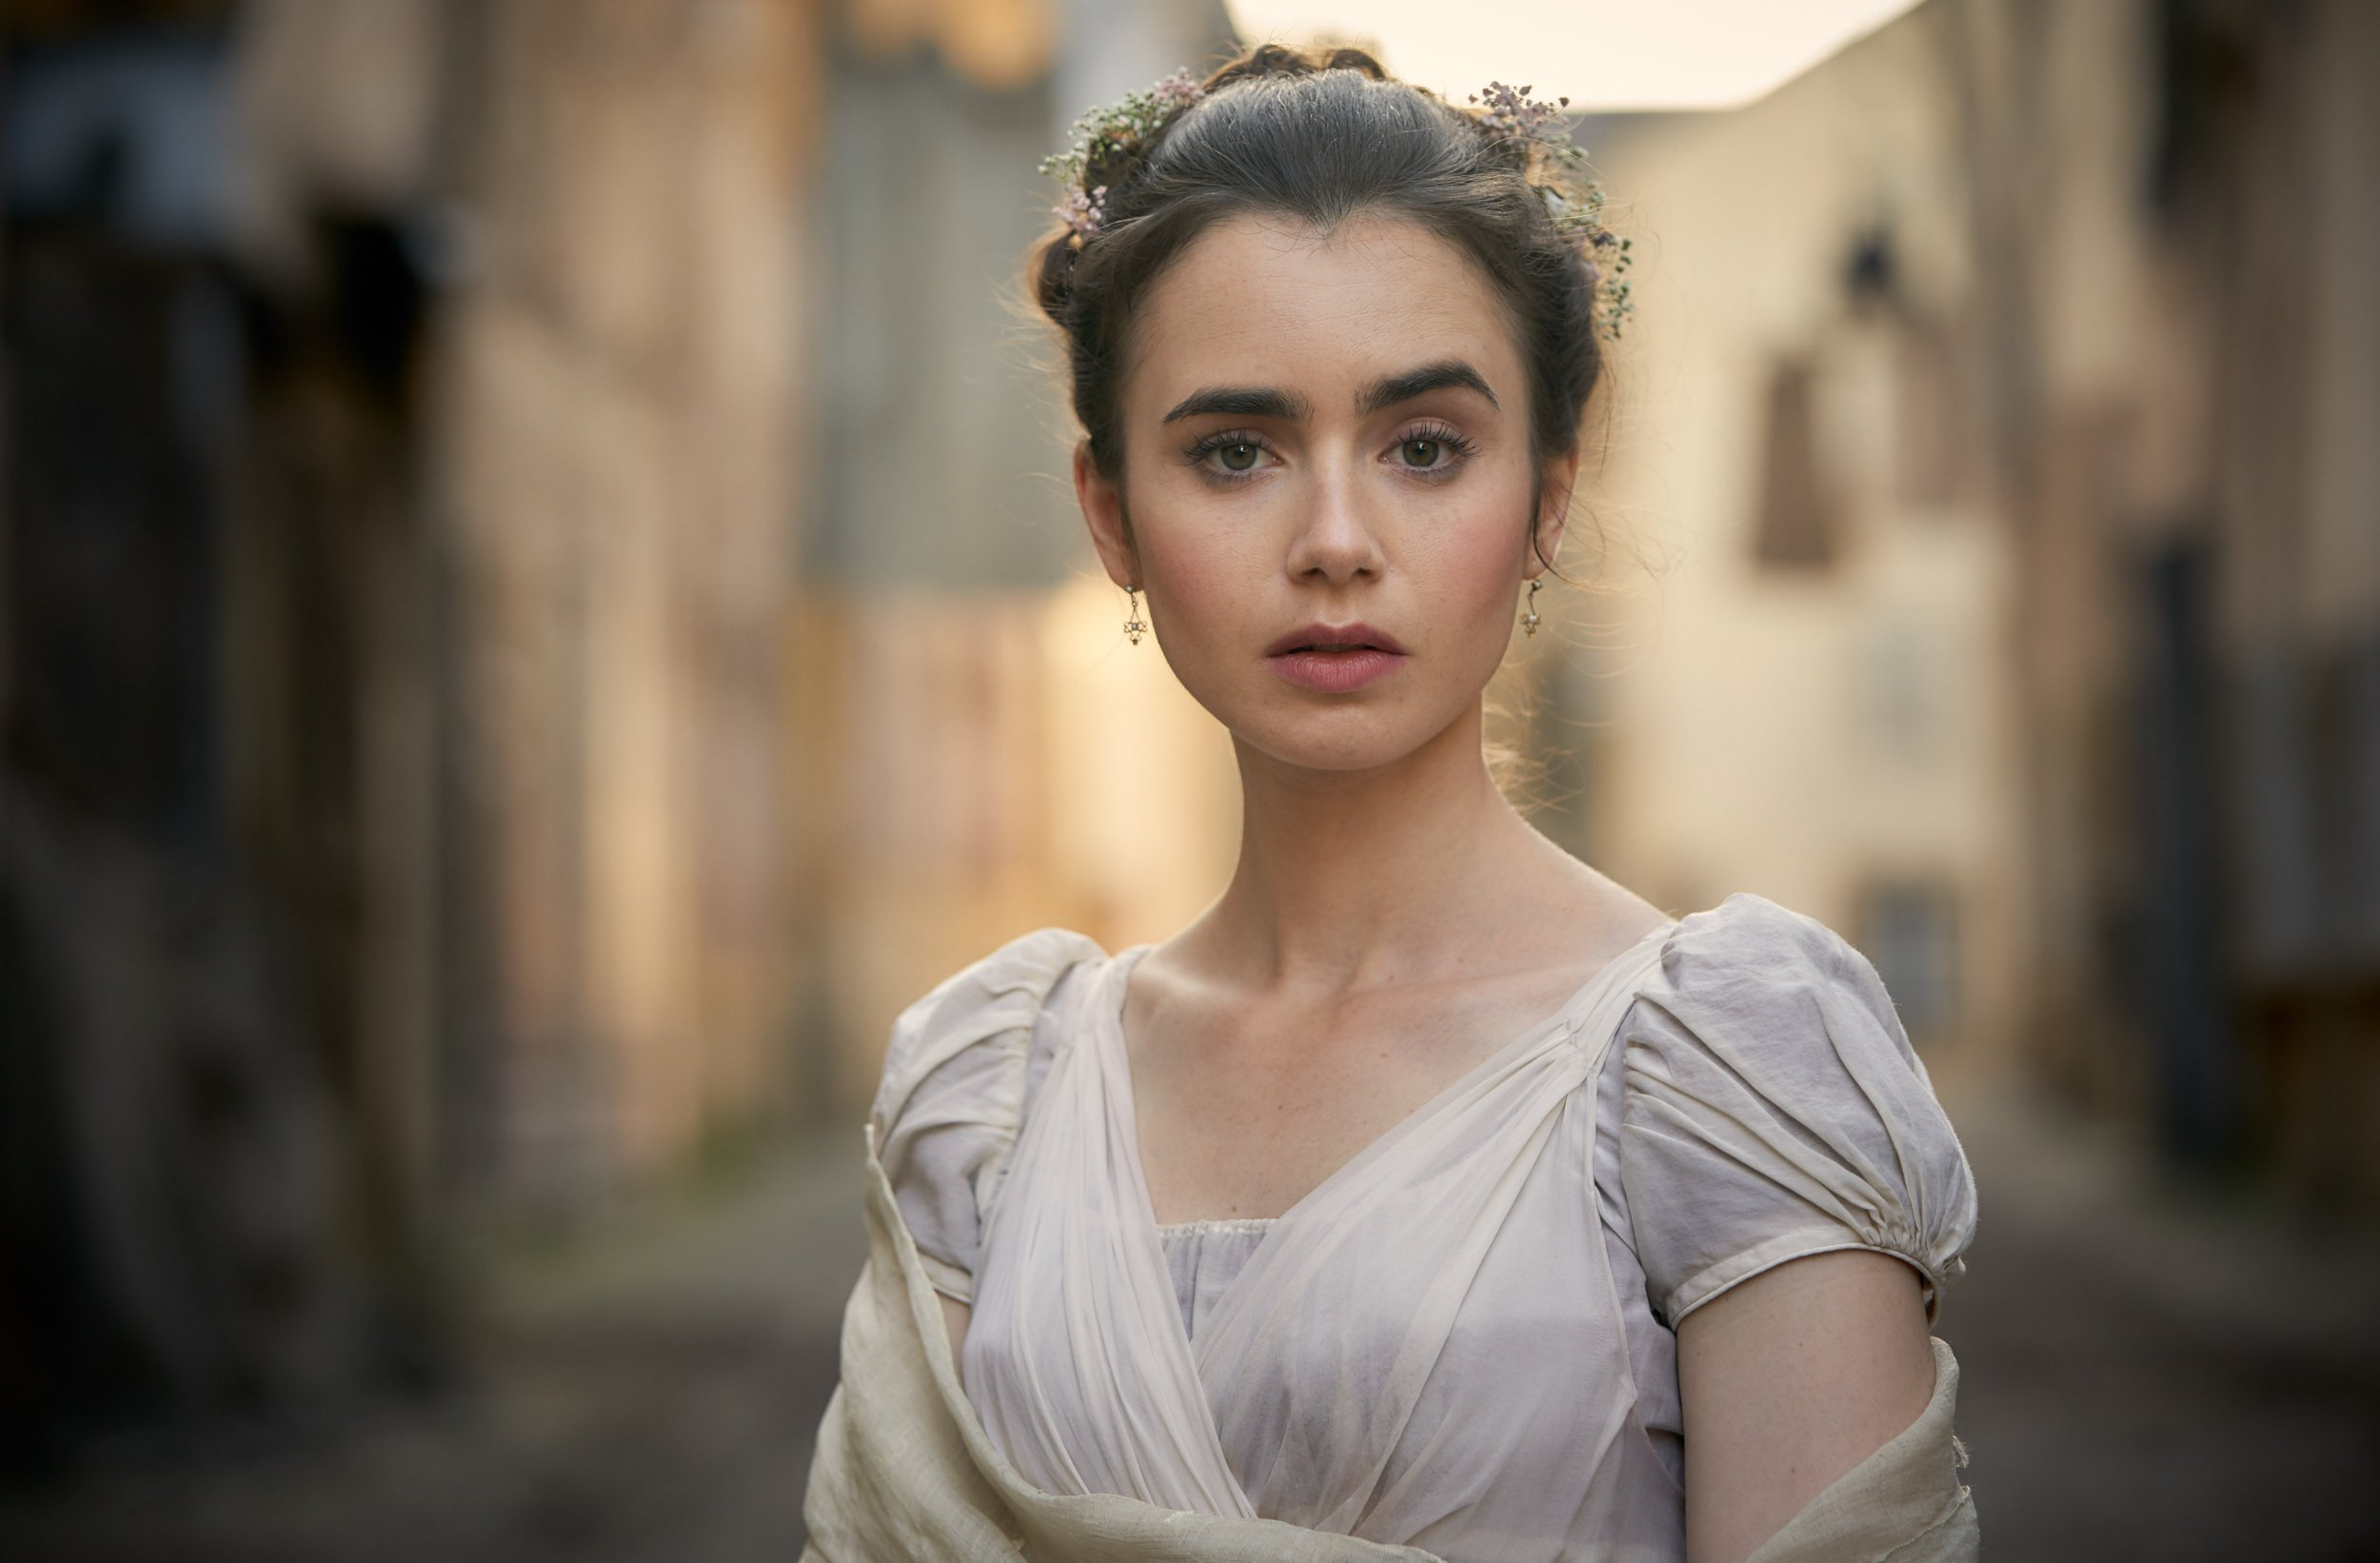 WARNING: Embargoed for publication until 22:00:00 on 15/10/2018 - Programme Name: Les Miserables - TX: 13/07/2018 - Episode: Les Miserables - First Look (No. n/a) - Picture Shows: **EMBARGOED FOR PUBLICATION UNTIL 22:00 HRS ON MONDAY 15TH OCTOBER 2018** Fantine (LILY COLLINS) - (C) BBC - Photographer: Robert Viglasky